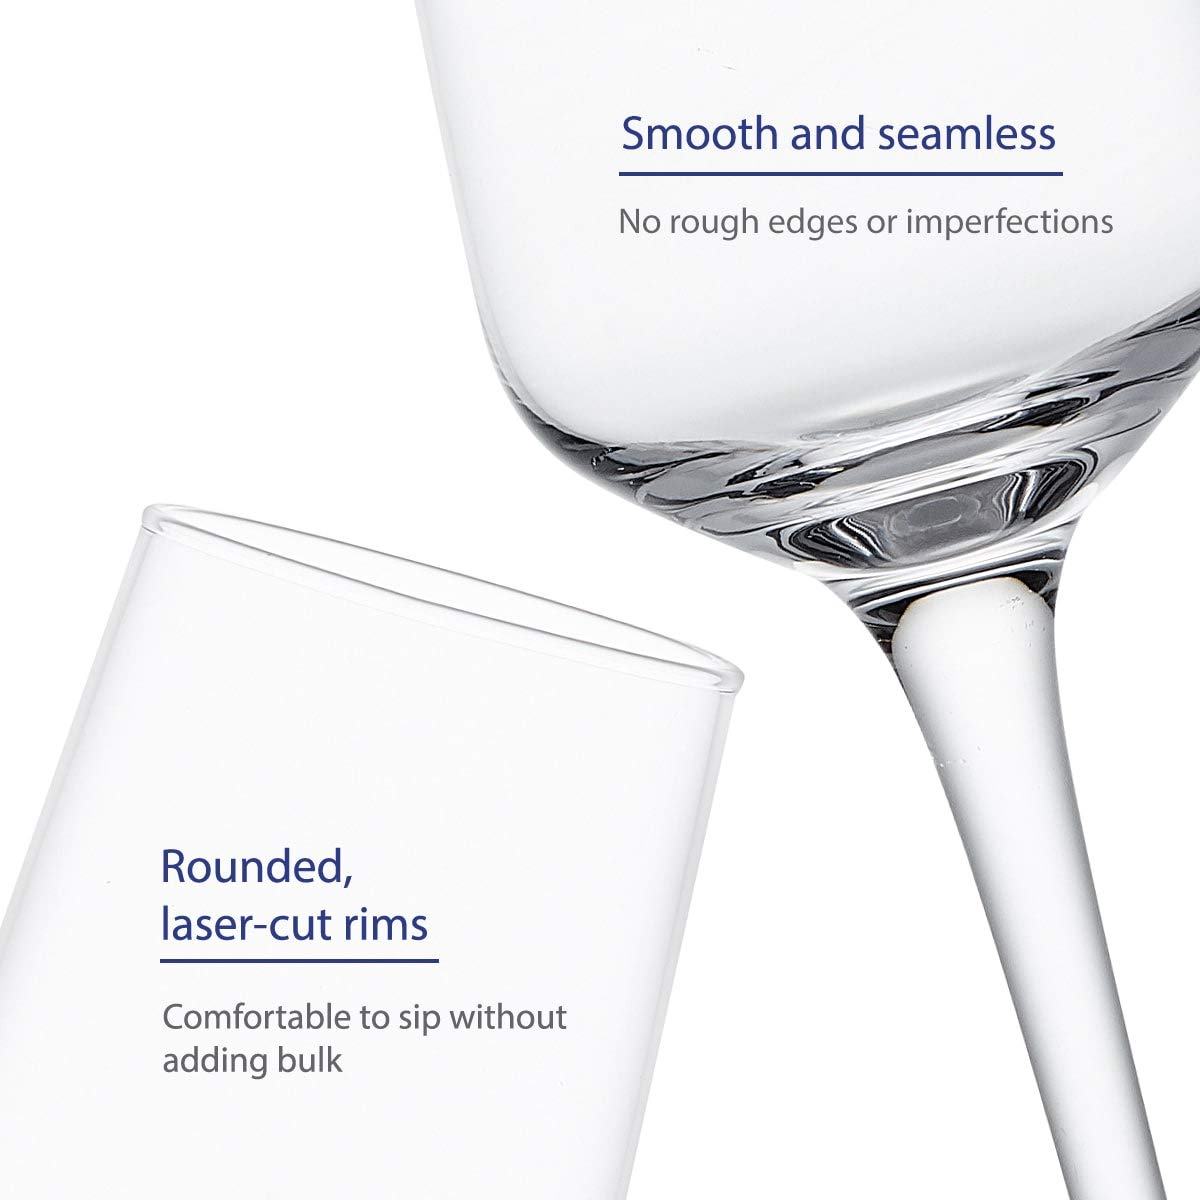 GoodGlassware Champagne Flutes (Set Of 4) 8.5 oz - Crystal Clear Clarity, Classic and Seamless Tower Design - Lead Free Glass, Dishwasher Safe, Quality Sparkling Wine Stemware Set by Vintorio (Image #3)